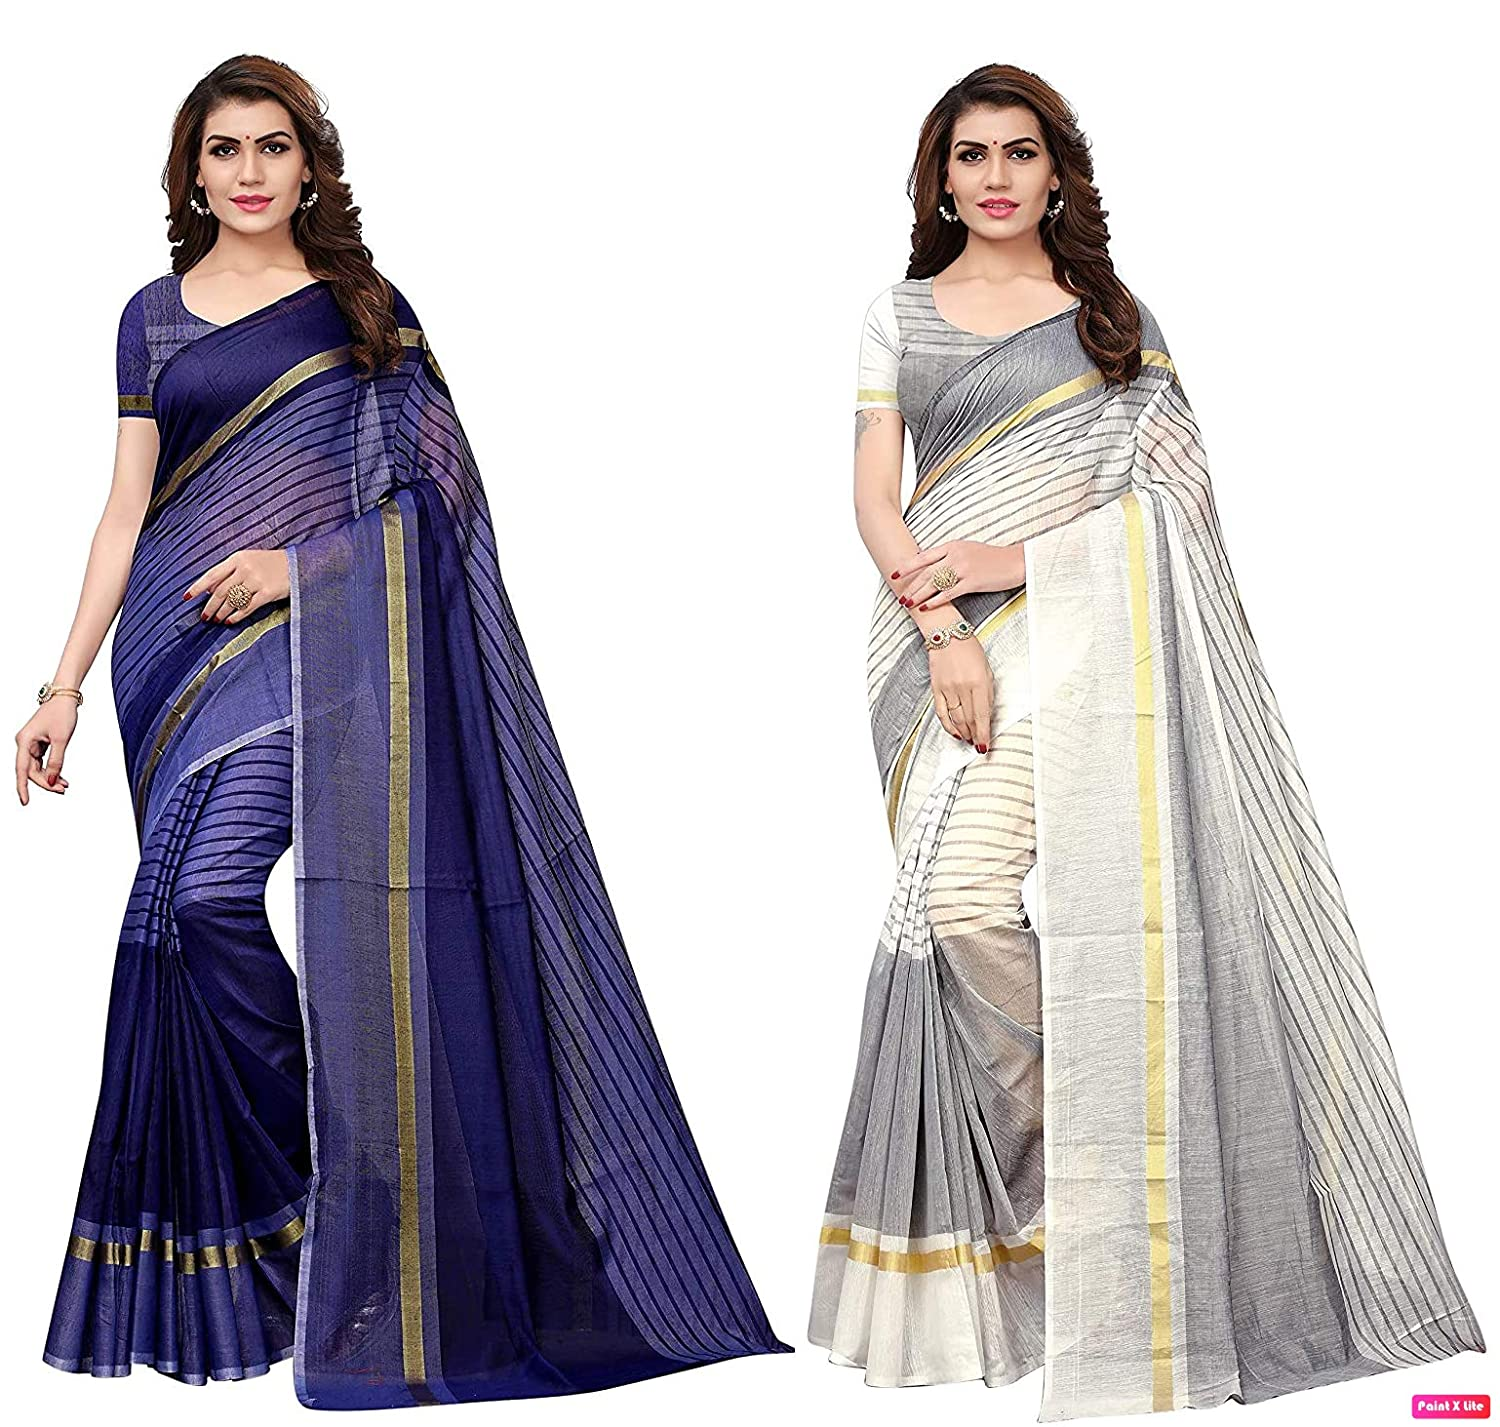 Anni Designer Cotton Saree With Blouse Piece (Pack Of 2)